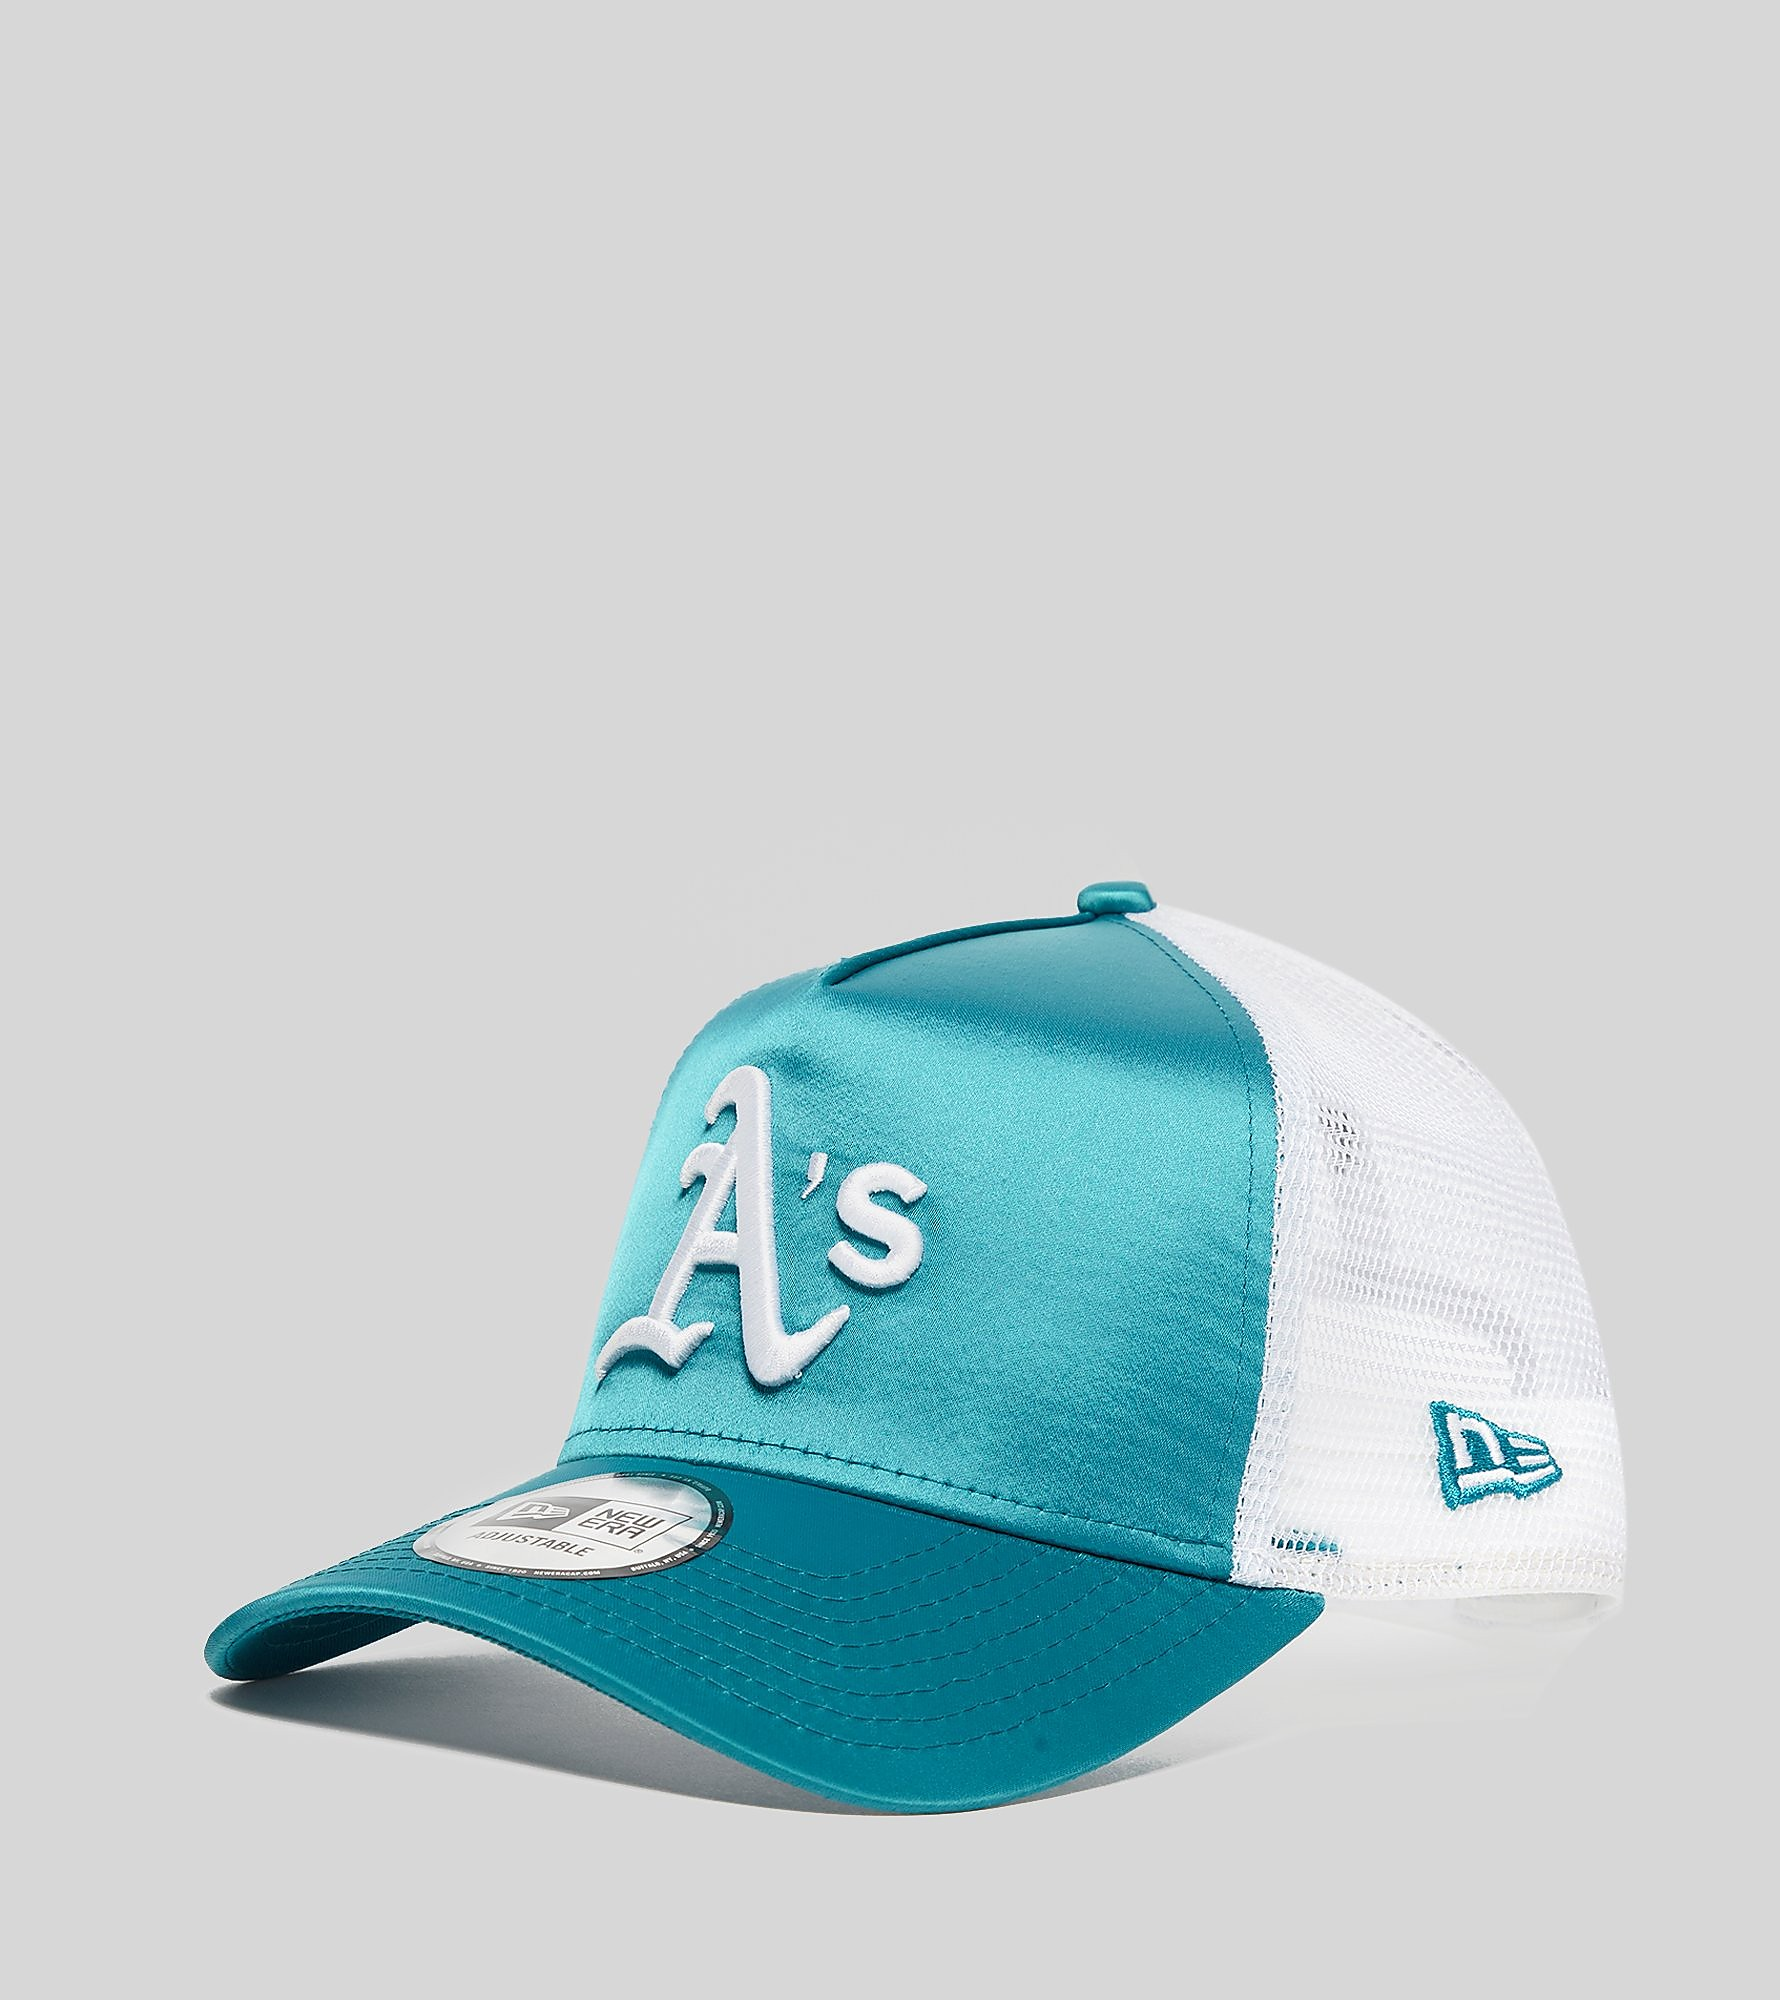 New Era A's Trucker Cap - size? exclusive